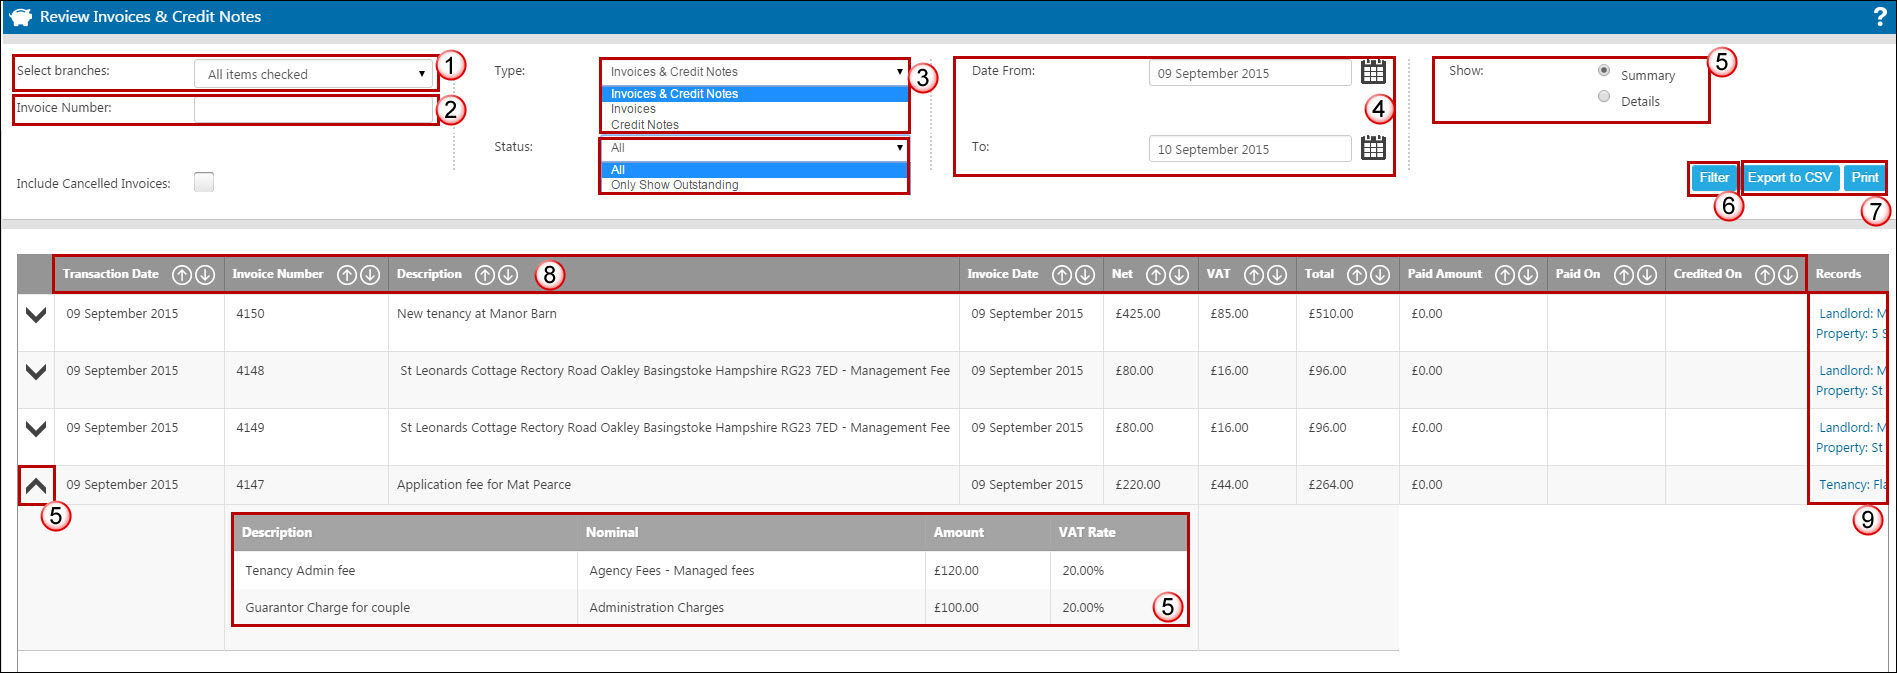 reviewing s invoices credit notes expert agent documentation apply the relevant filters for branch if necessary